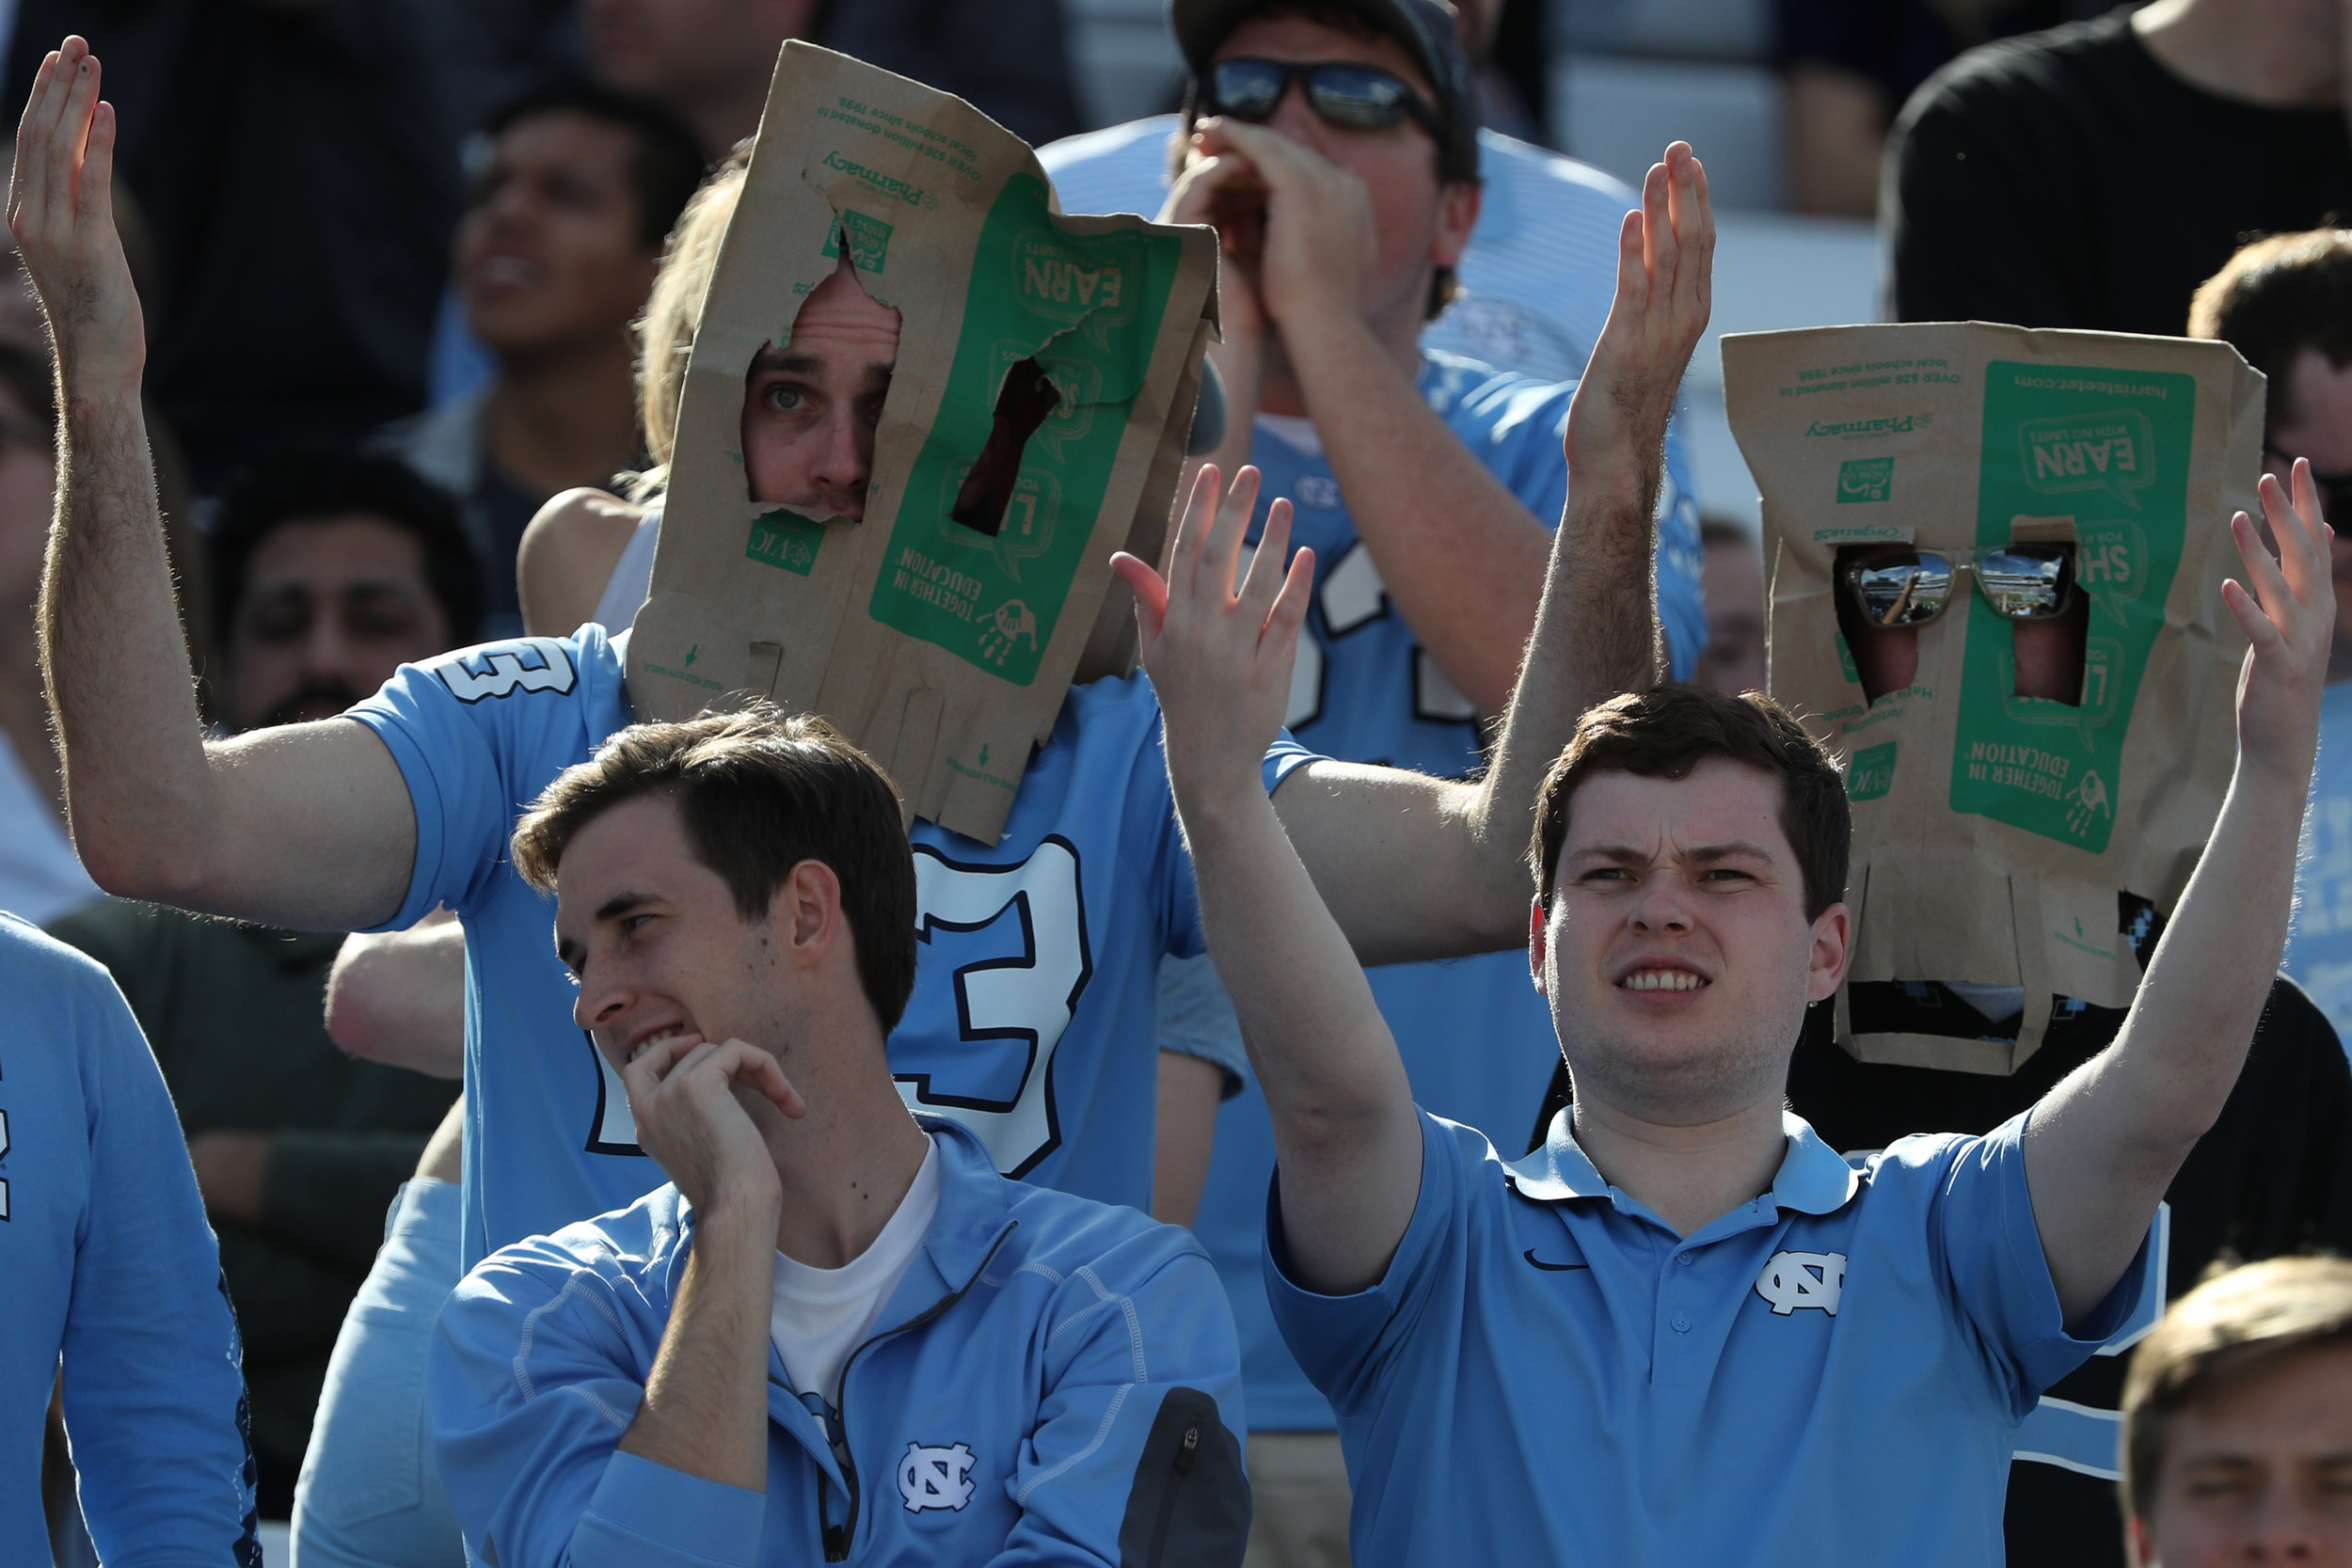 UNC fans react to a pass interference call during Saturday's game at Kenan Memorial Stadium in Chapel Hill, NC on October 28, 2017. The Hurricanes beat the Tar Heels 24 to 19.